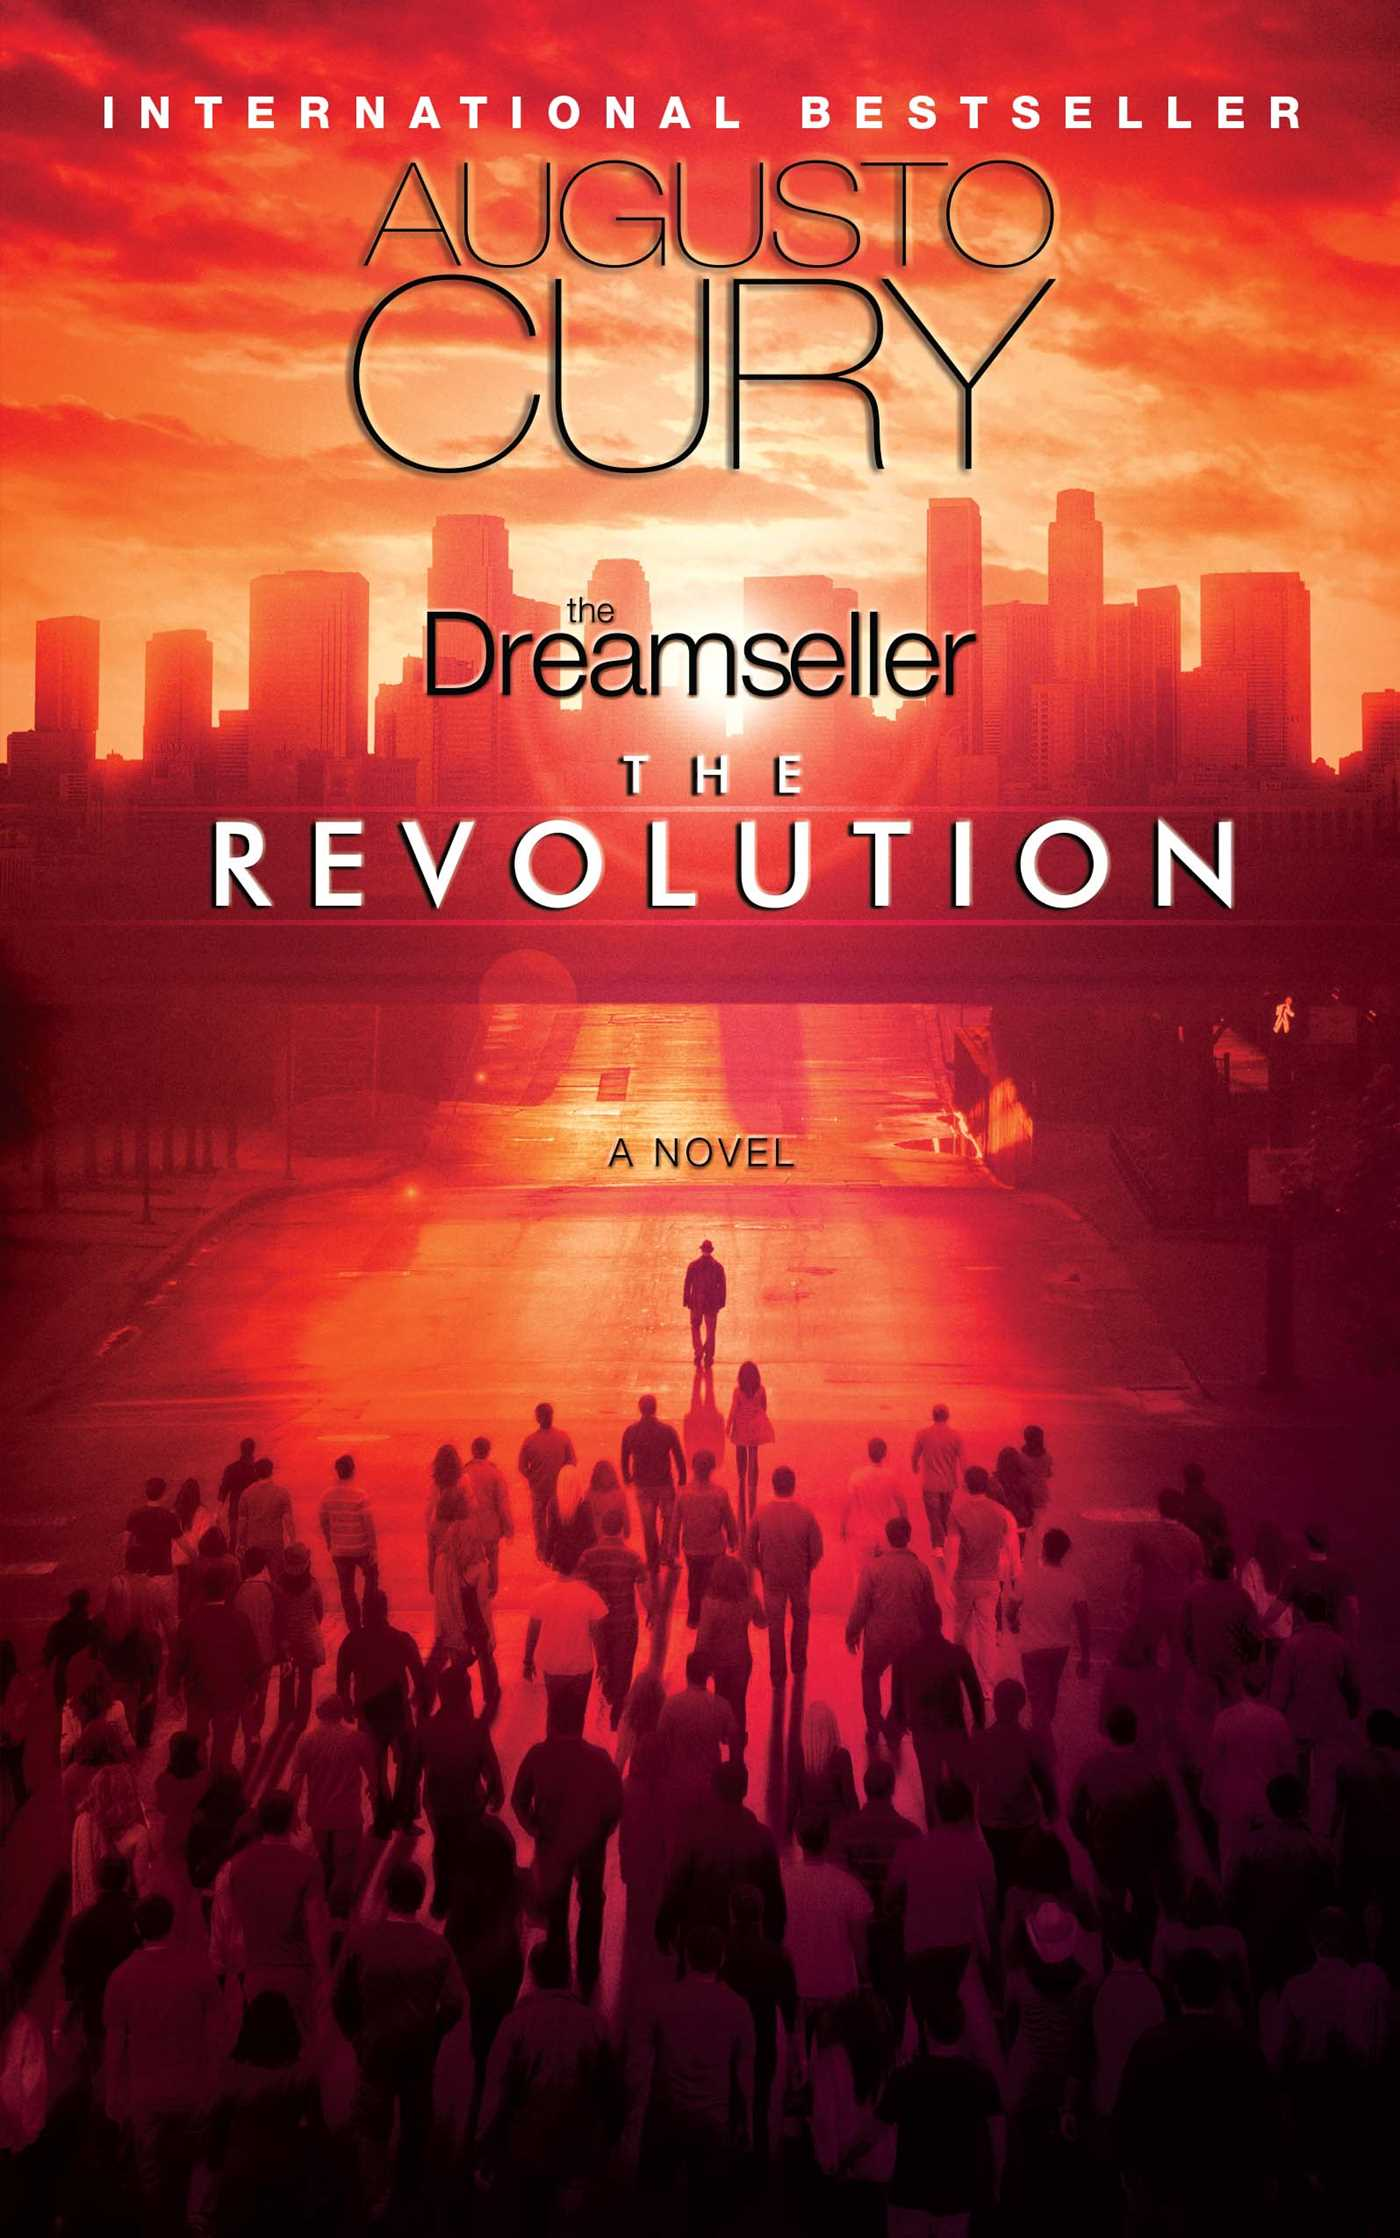 The-dreamseller-the-revolution-9781439196052_hr